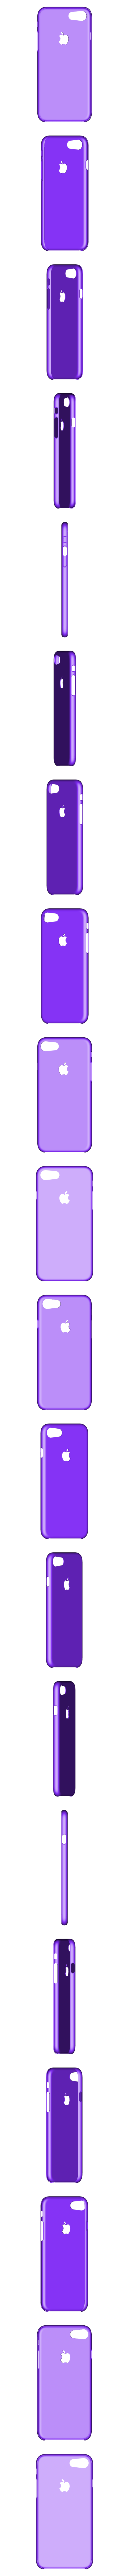 Iphone7Case-Low_Profile_AppleLogo.stl Download free STL file iPhone 7 and 7Plus Cases - Ultra Thin Rigid • 3D printing model, DuaneIndeed